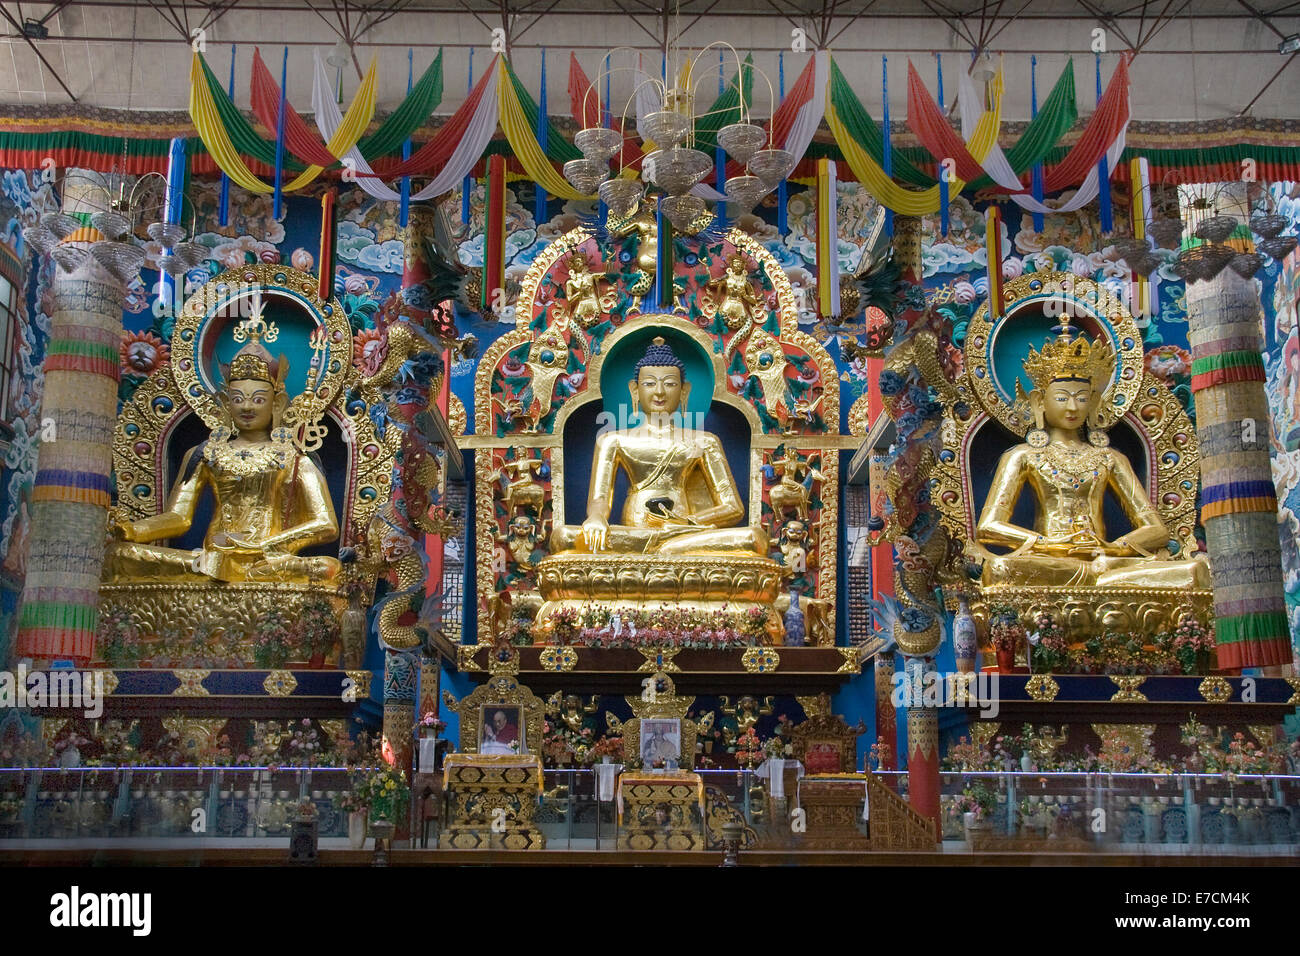 Lord Buddha at the centre, flanked by Lord Padmasambhava and Lord Amitayus on either side at Namdroling Monastery - Stock Image